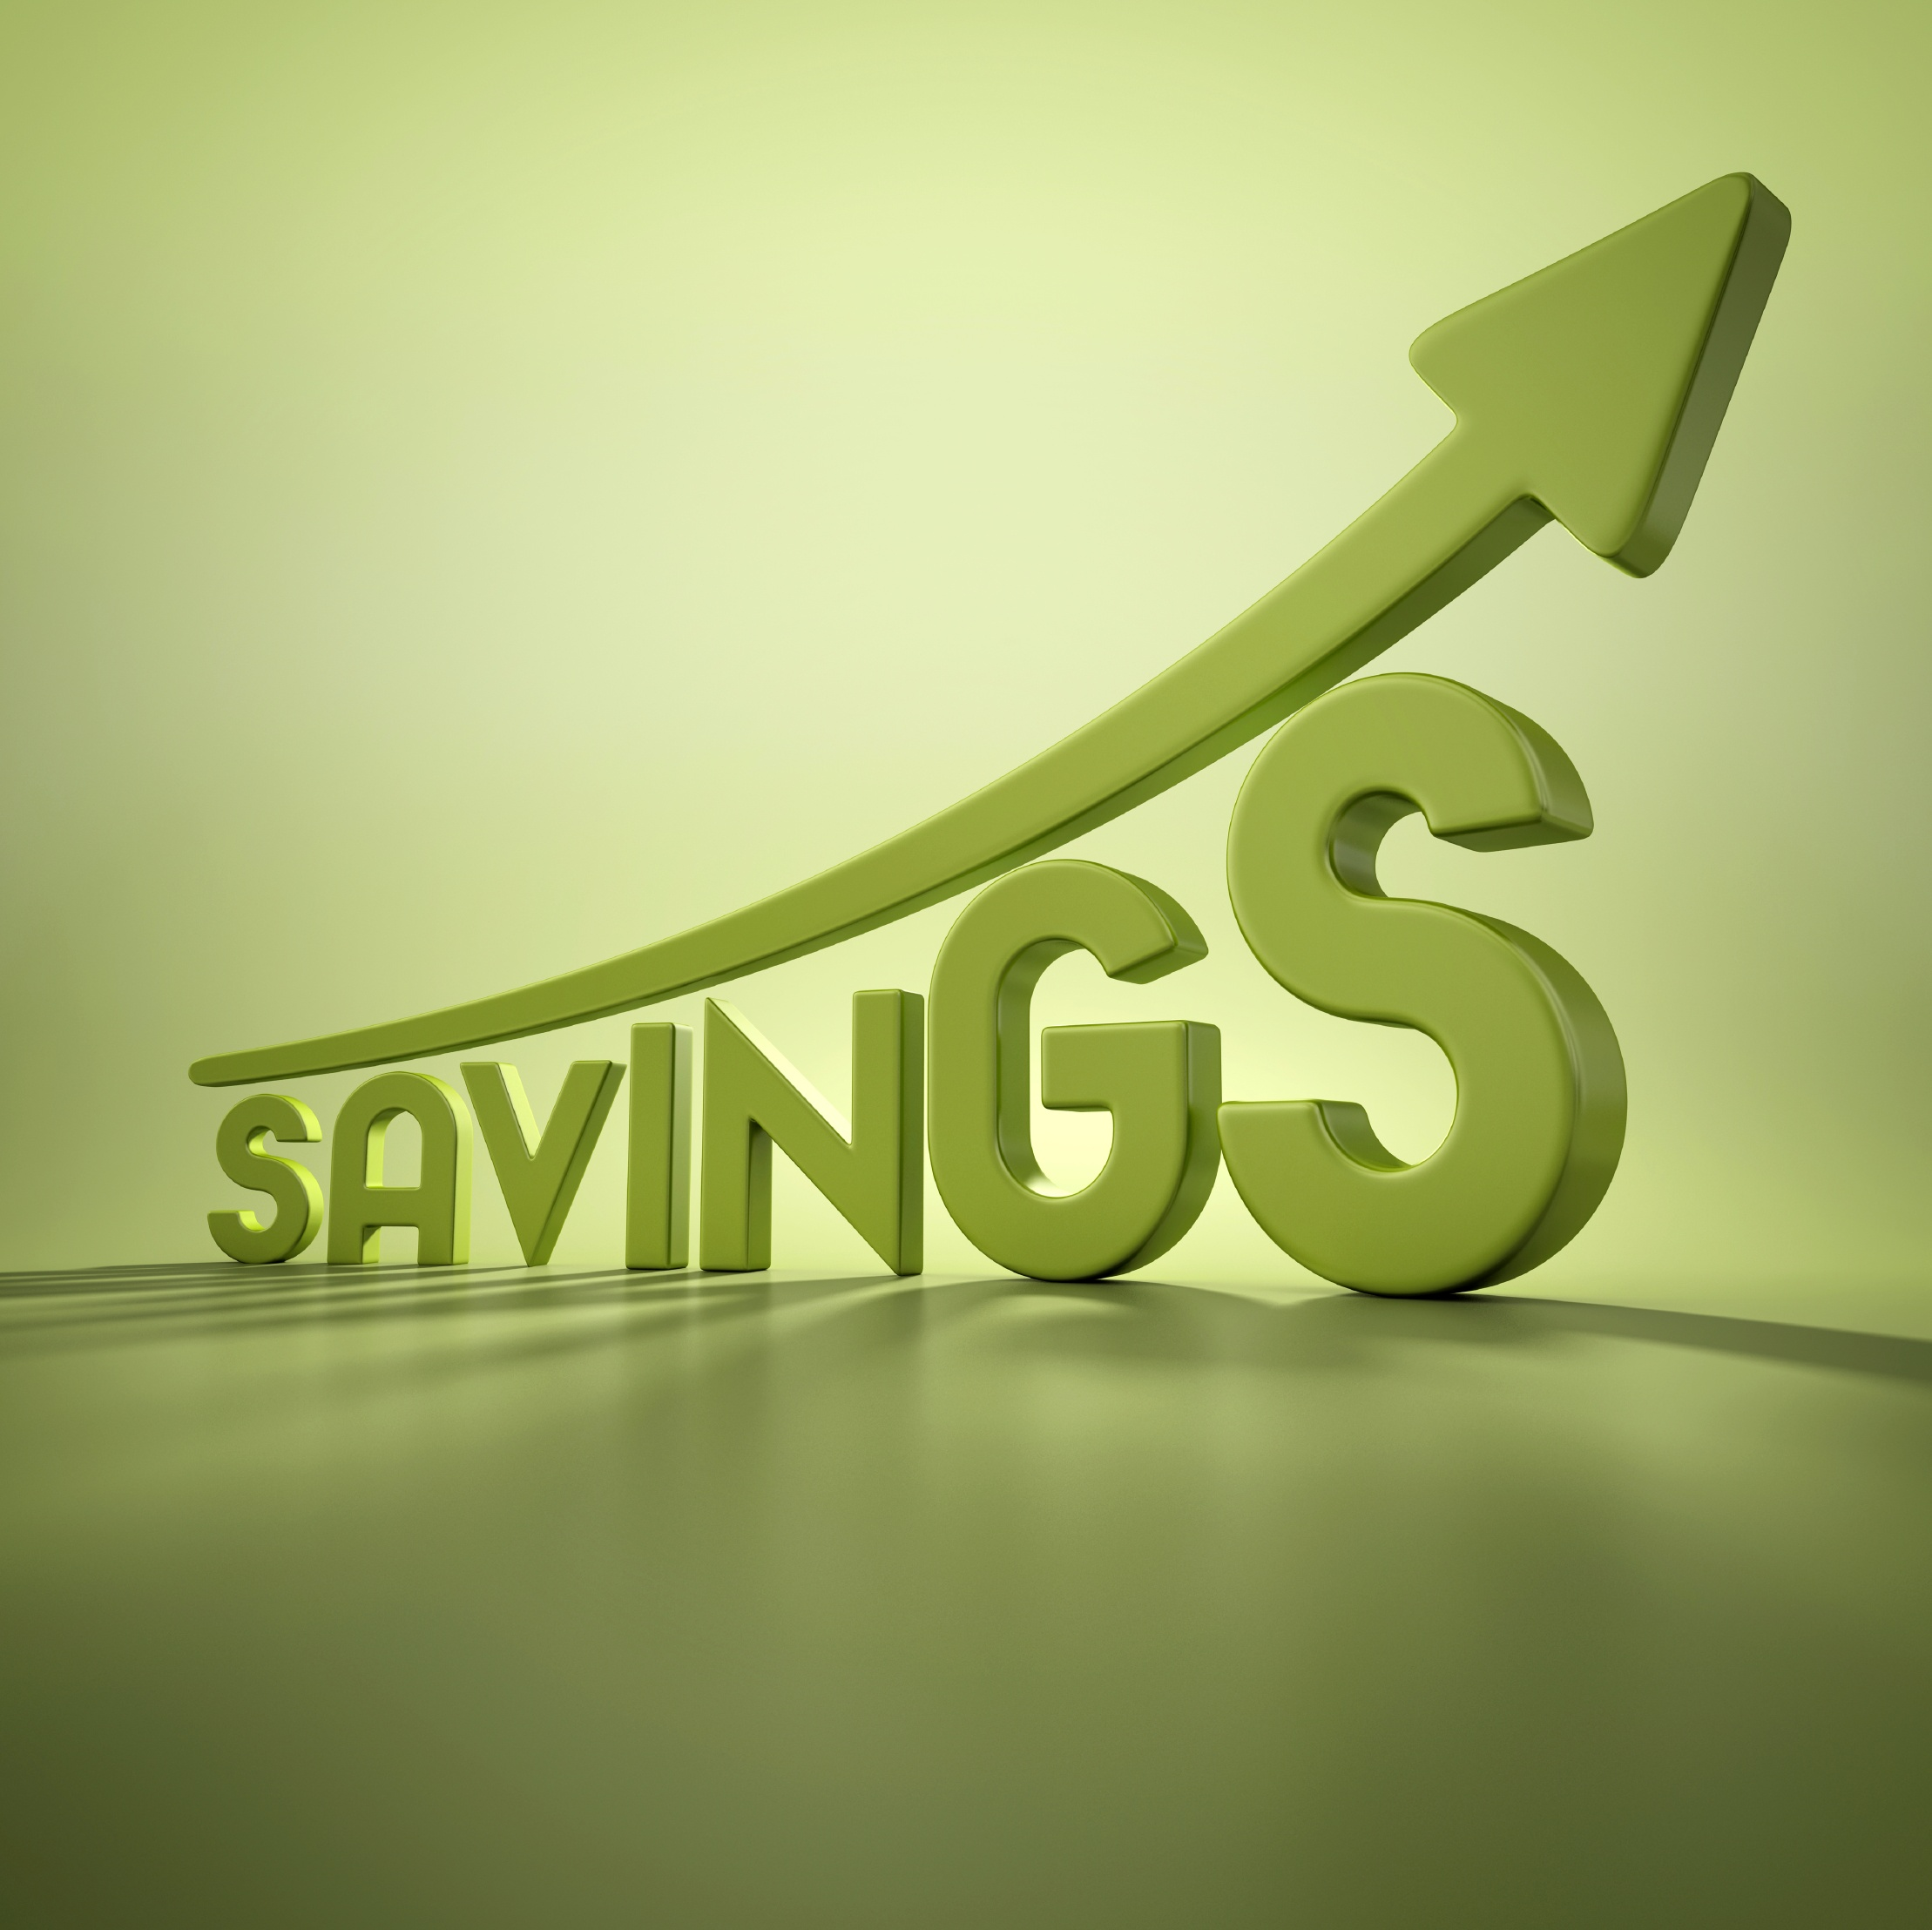 green-savings-graph-studio-000011696786_Large.jpg